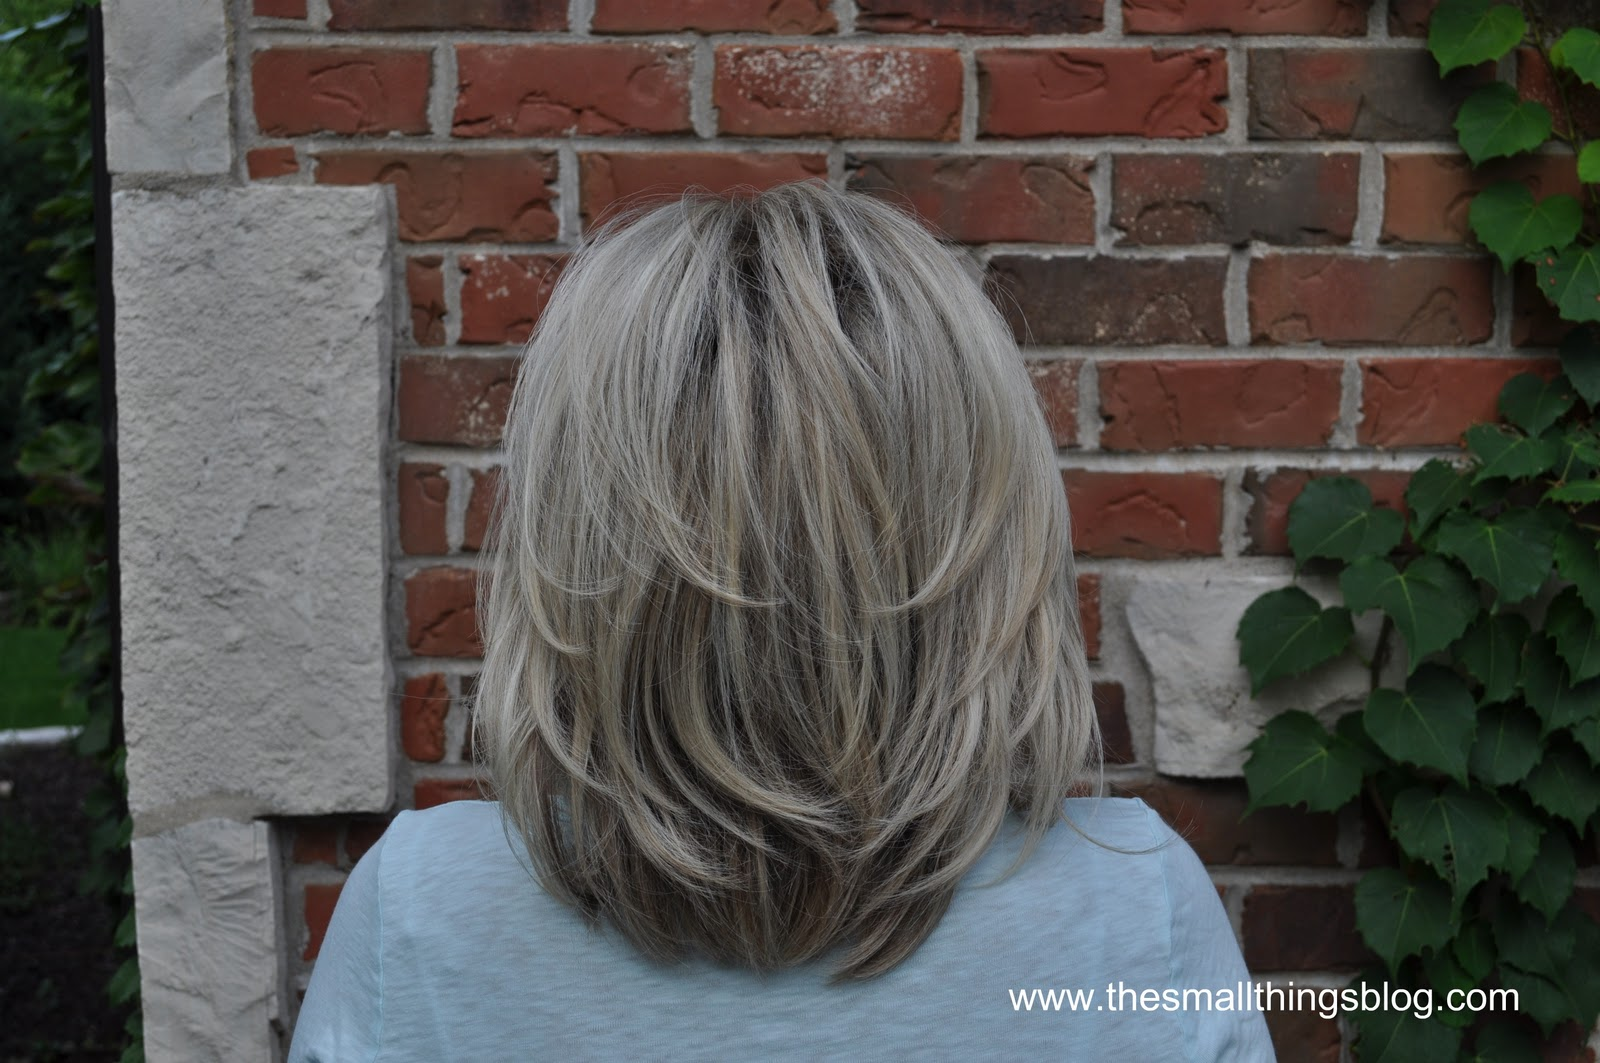 My Haircut – The Small Things Blog